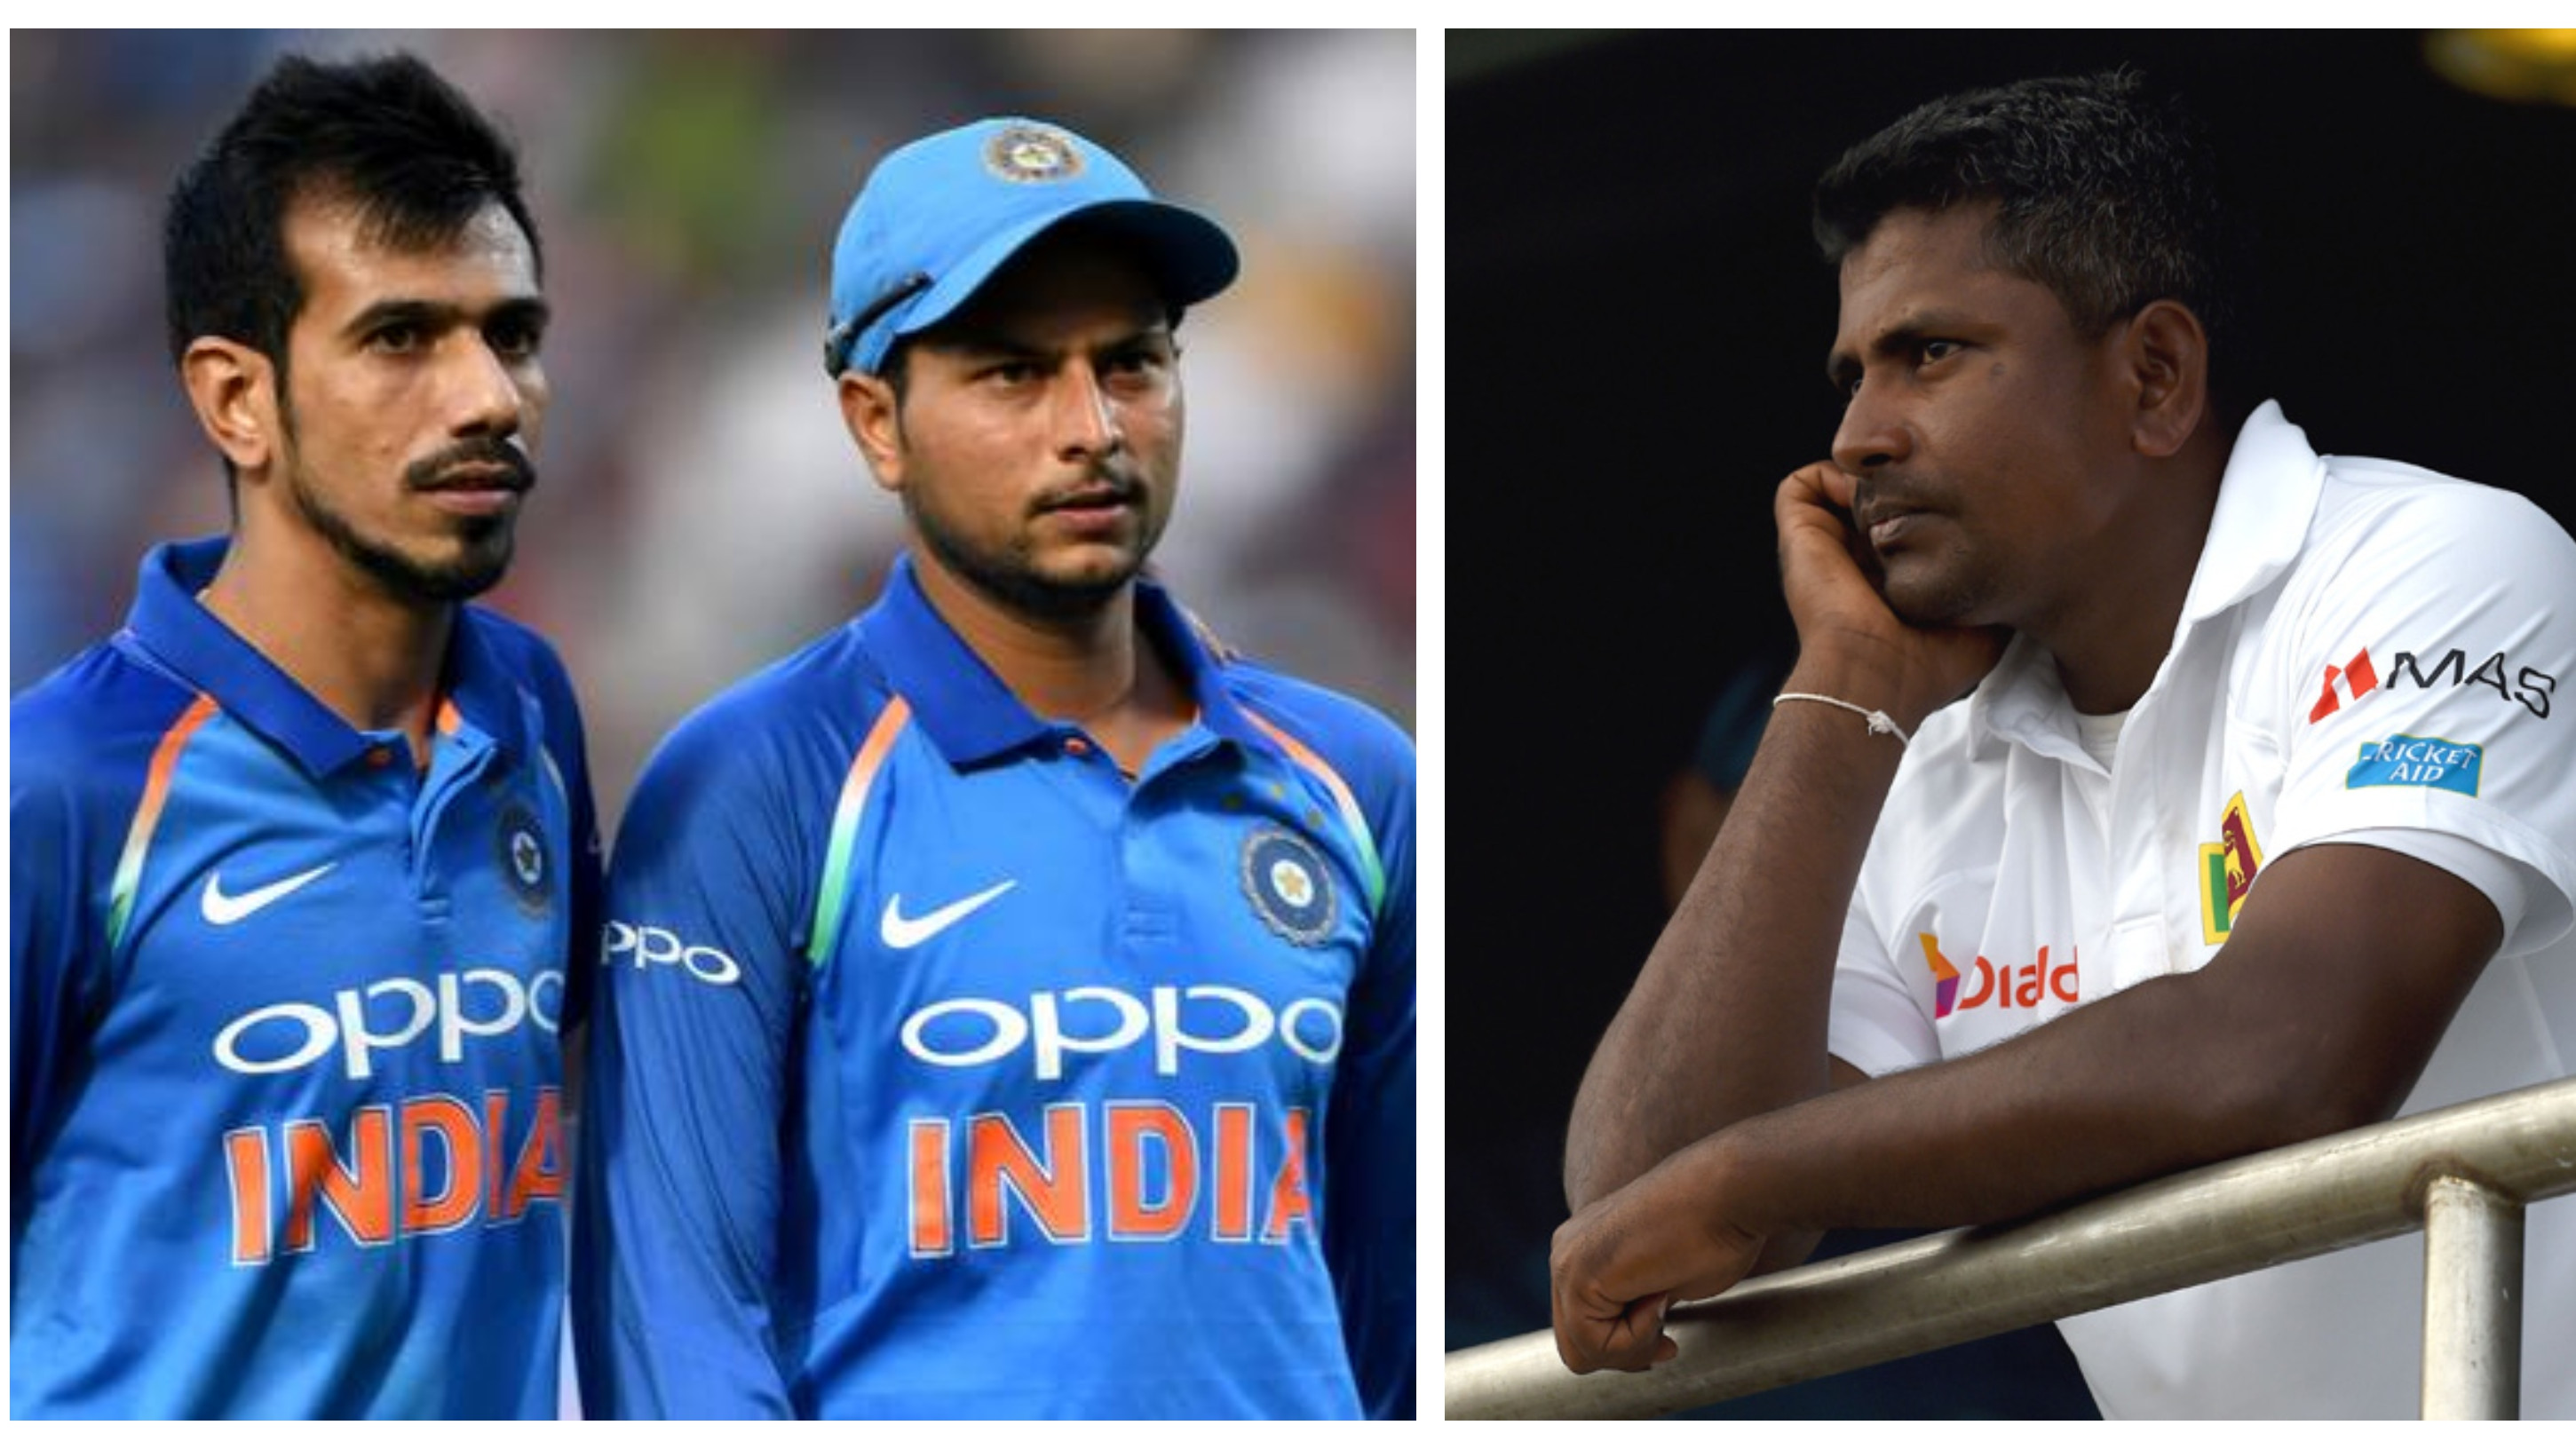 Kuldeep and Chahal are doing a fantastic job in one-day cricket for India, says Rangana Herath